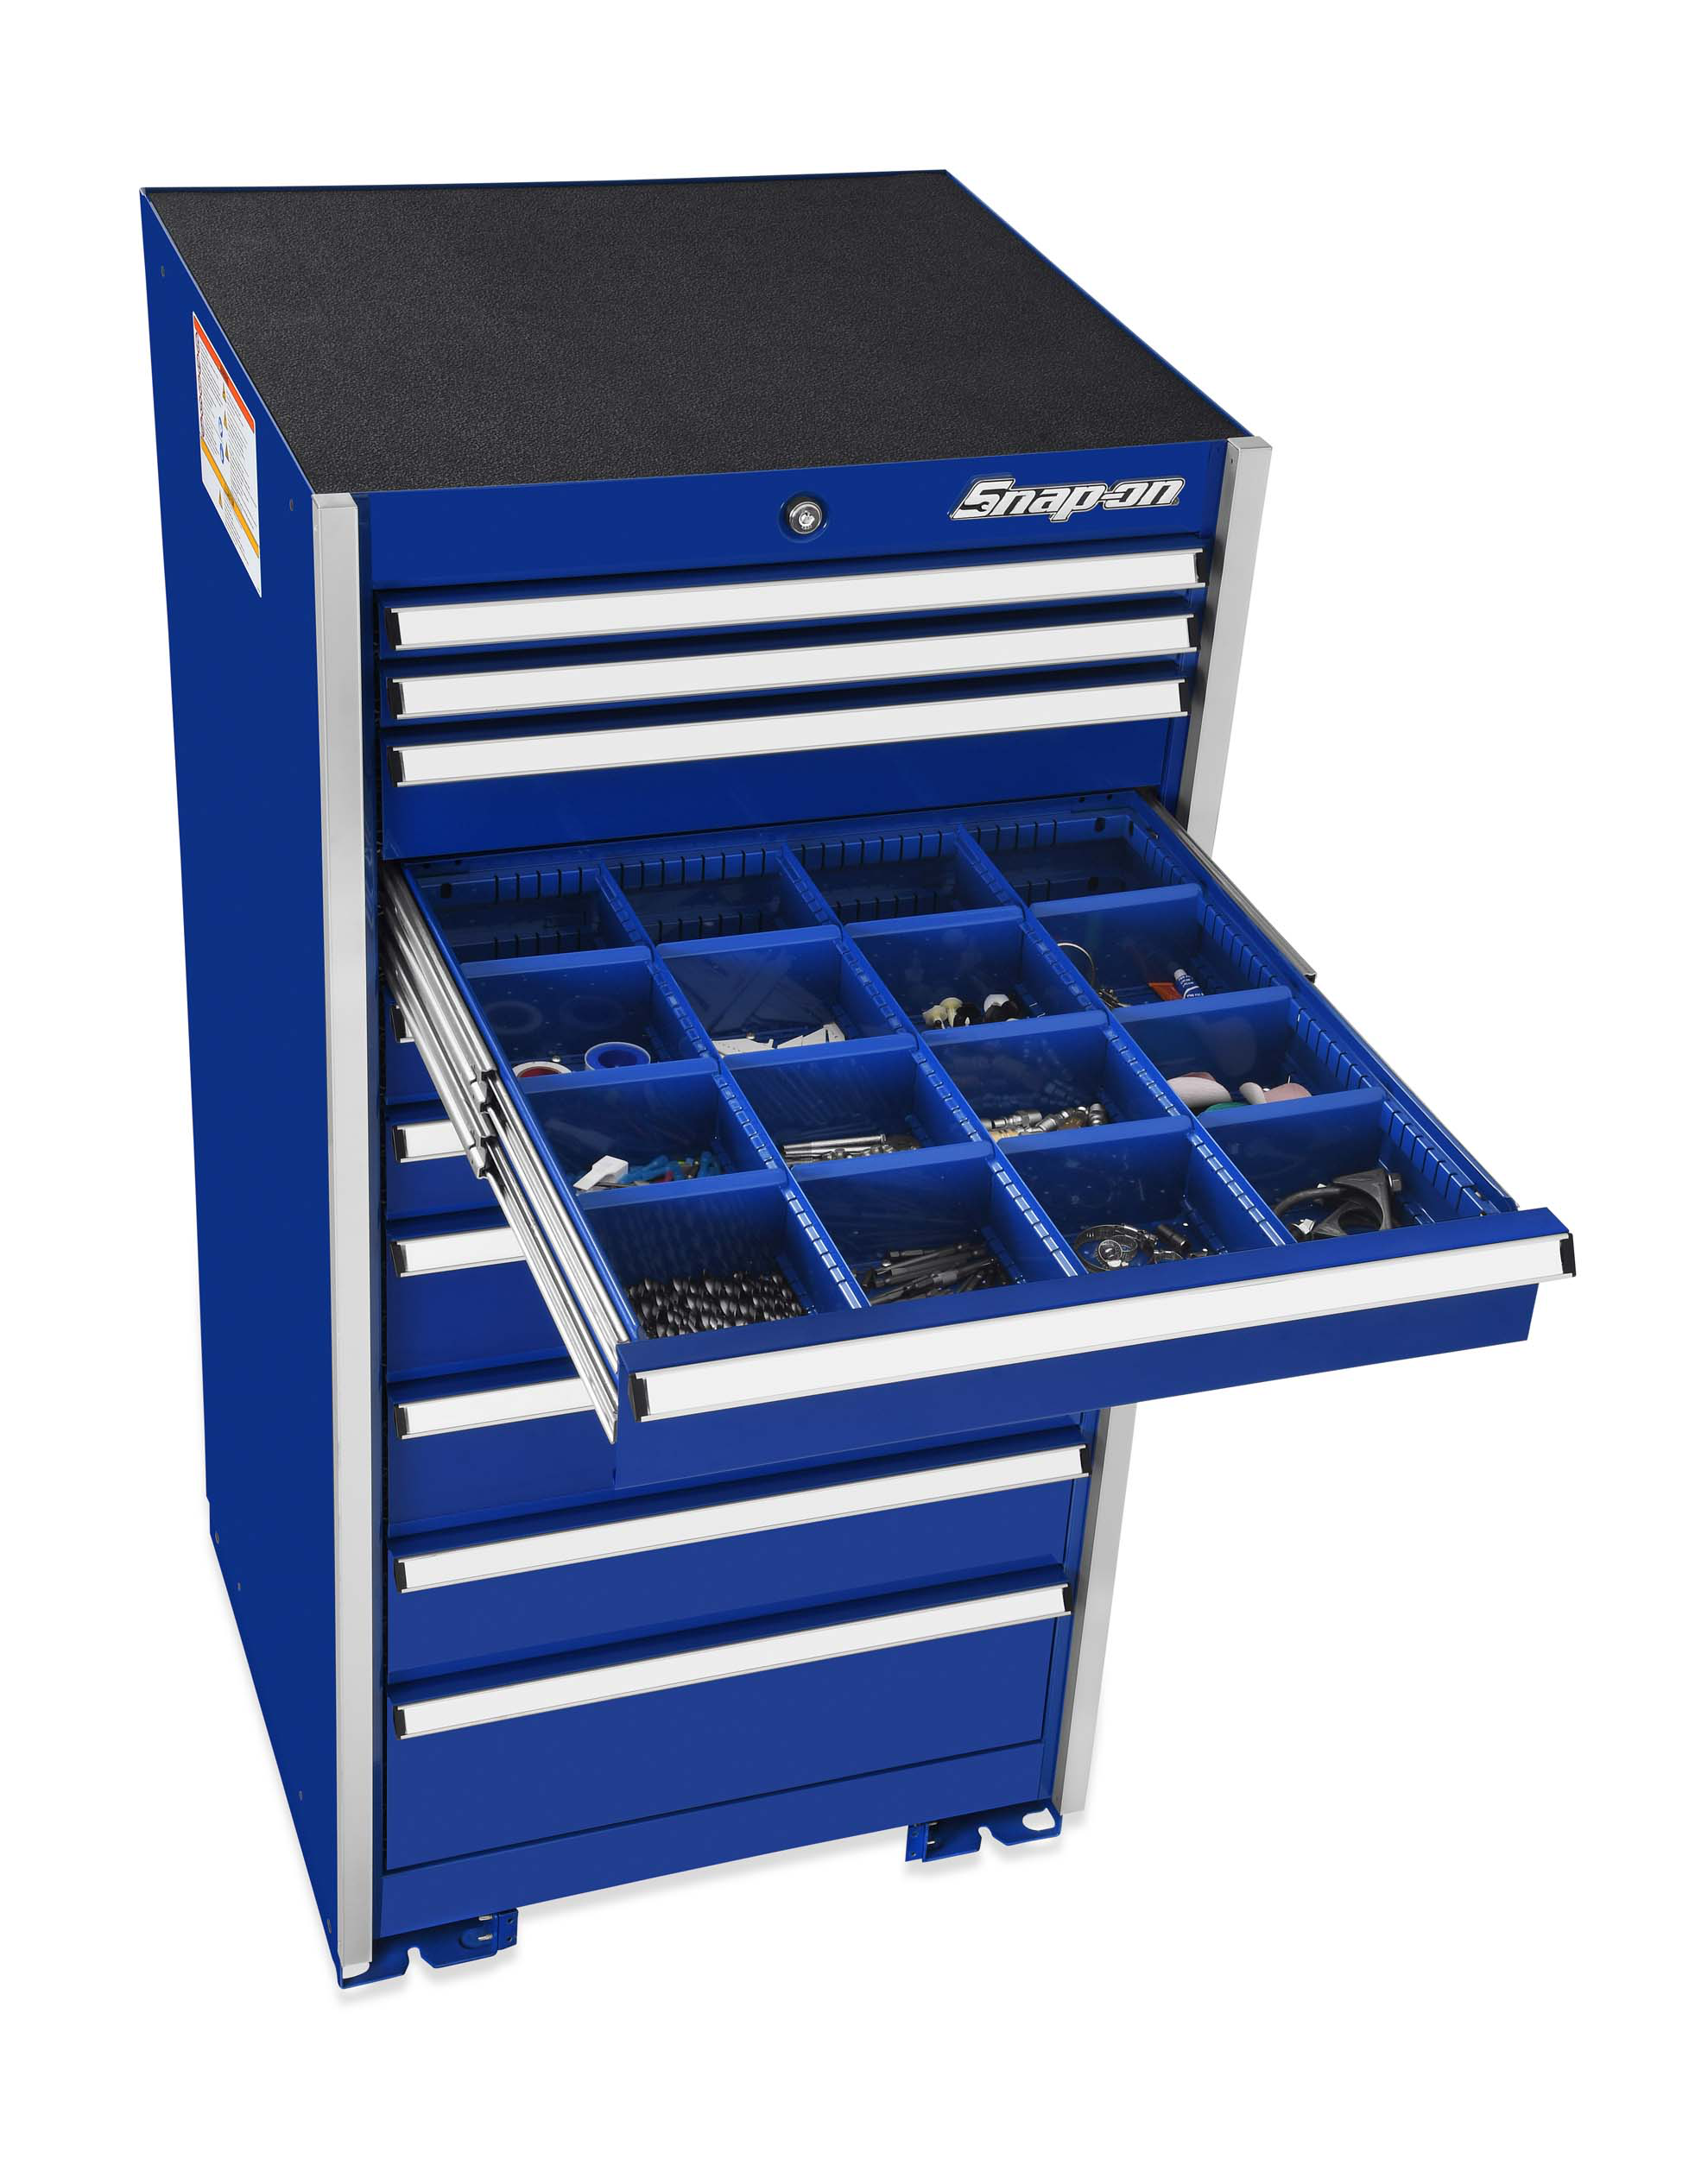 Snap-on introduces IQON line of ergonomic roll cabinets